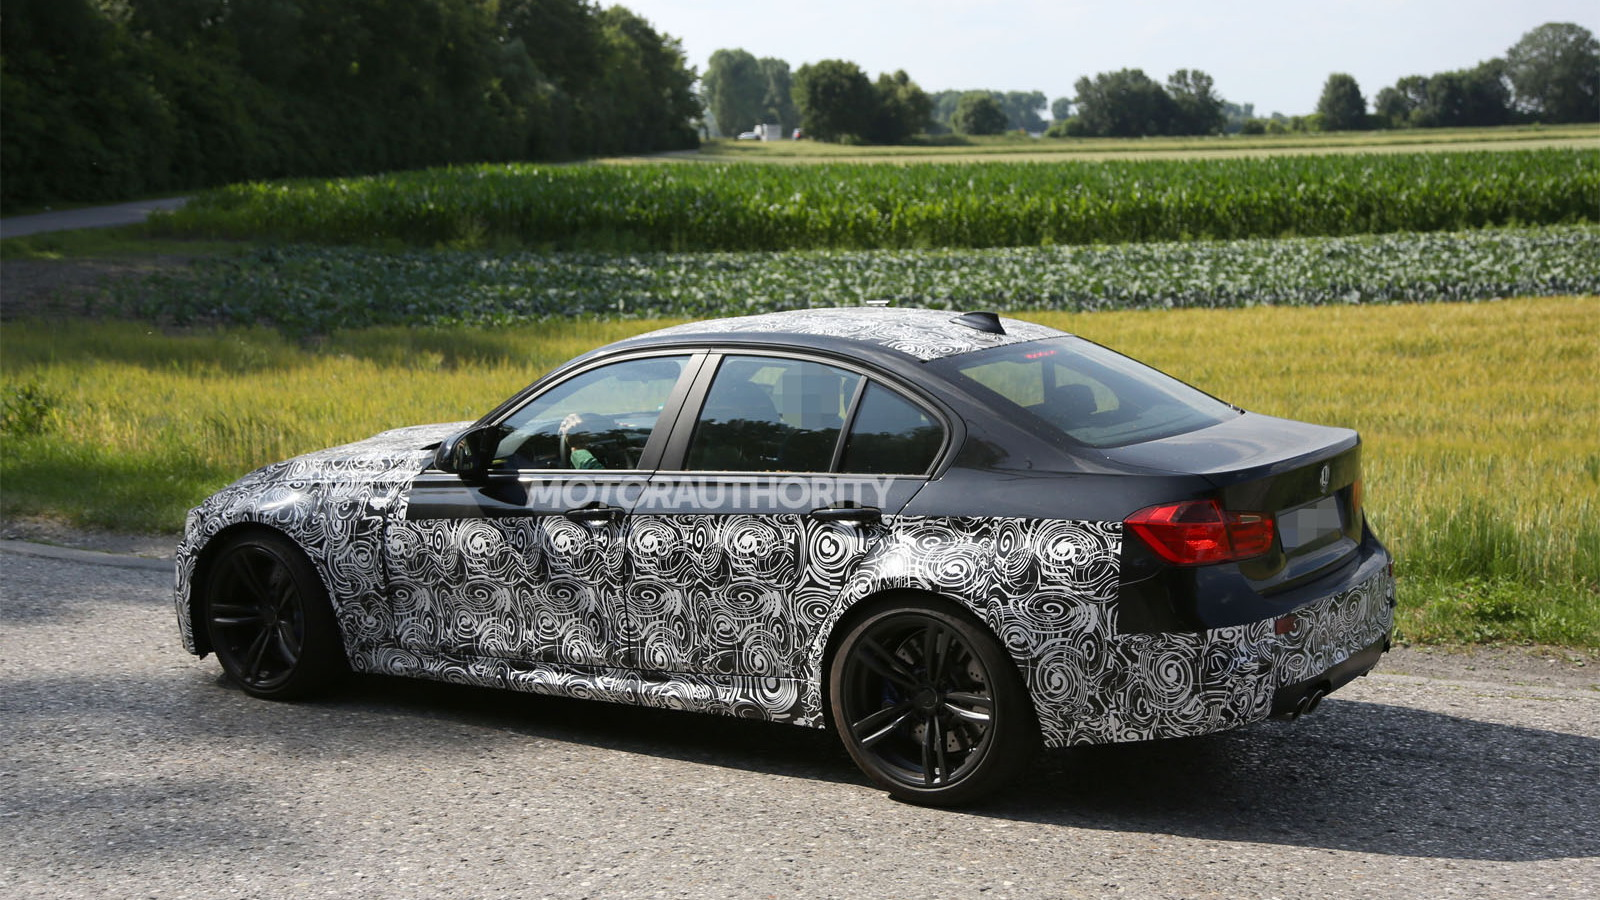 BMW Teases Engine Sound For New M3 And M4: Video